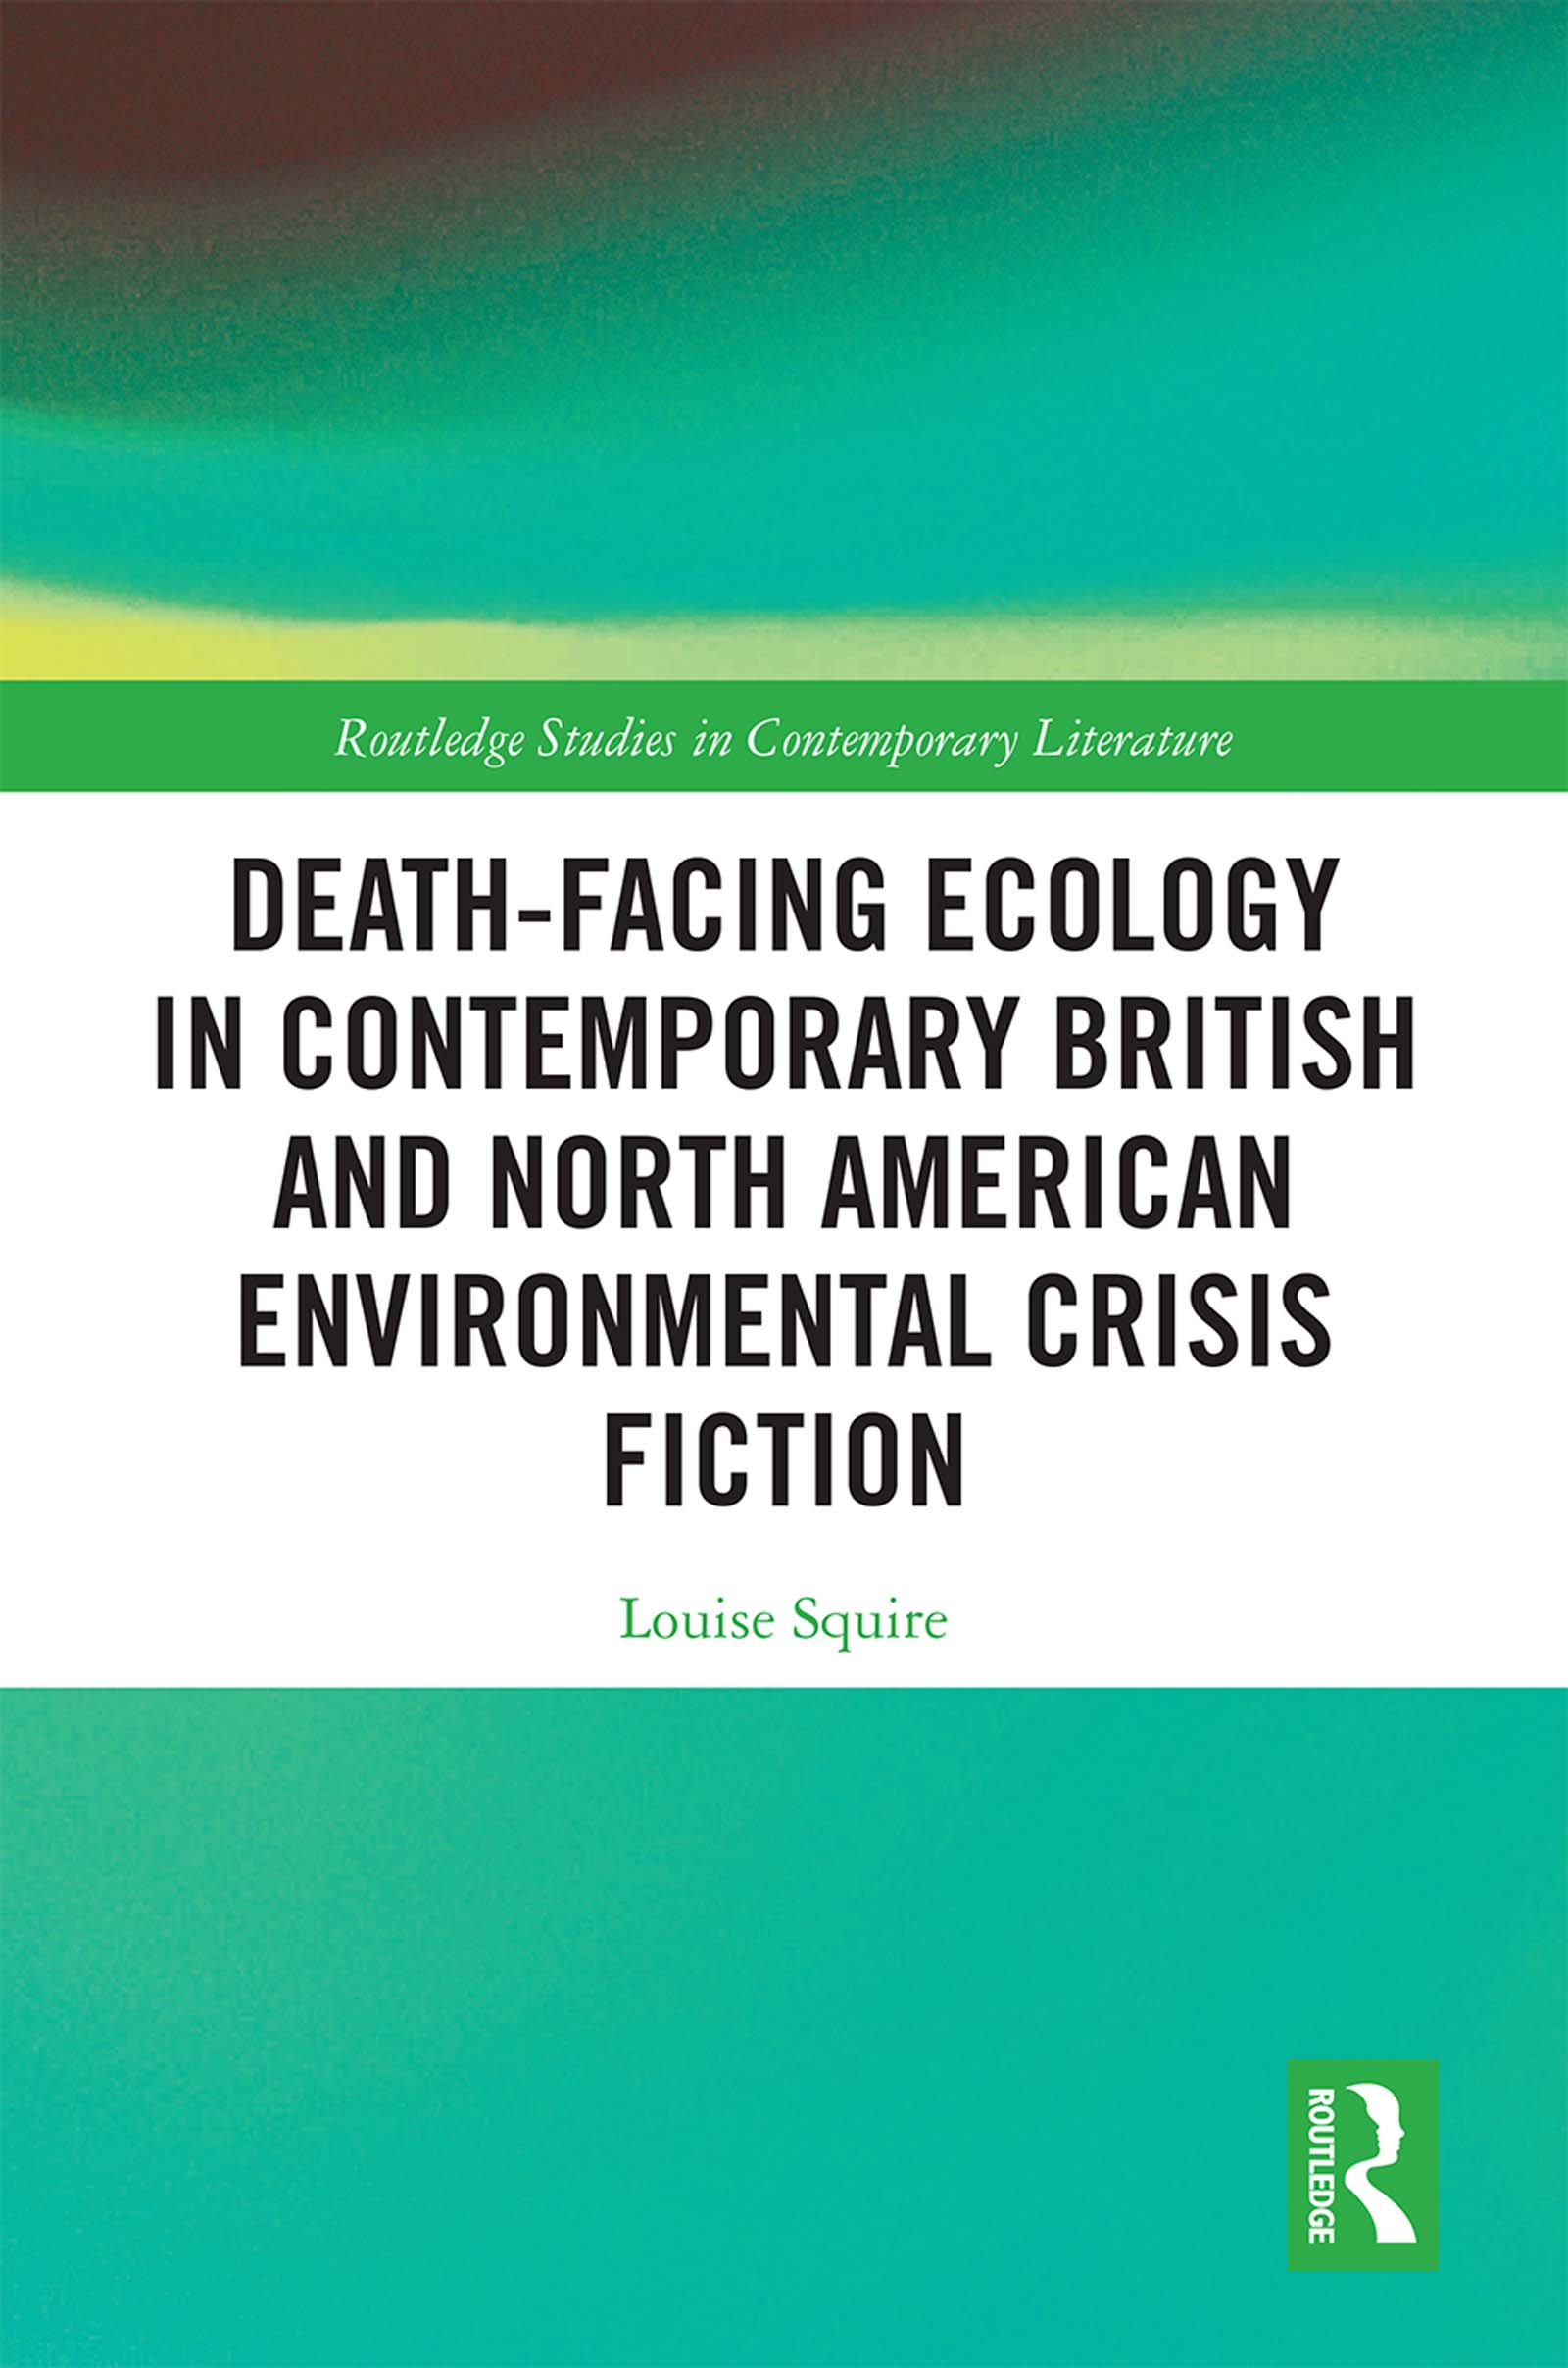 Death-Facing Ecology in Contemporary British and North American Environmental Crisis Fiction book cover